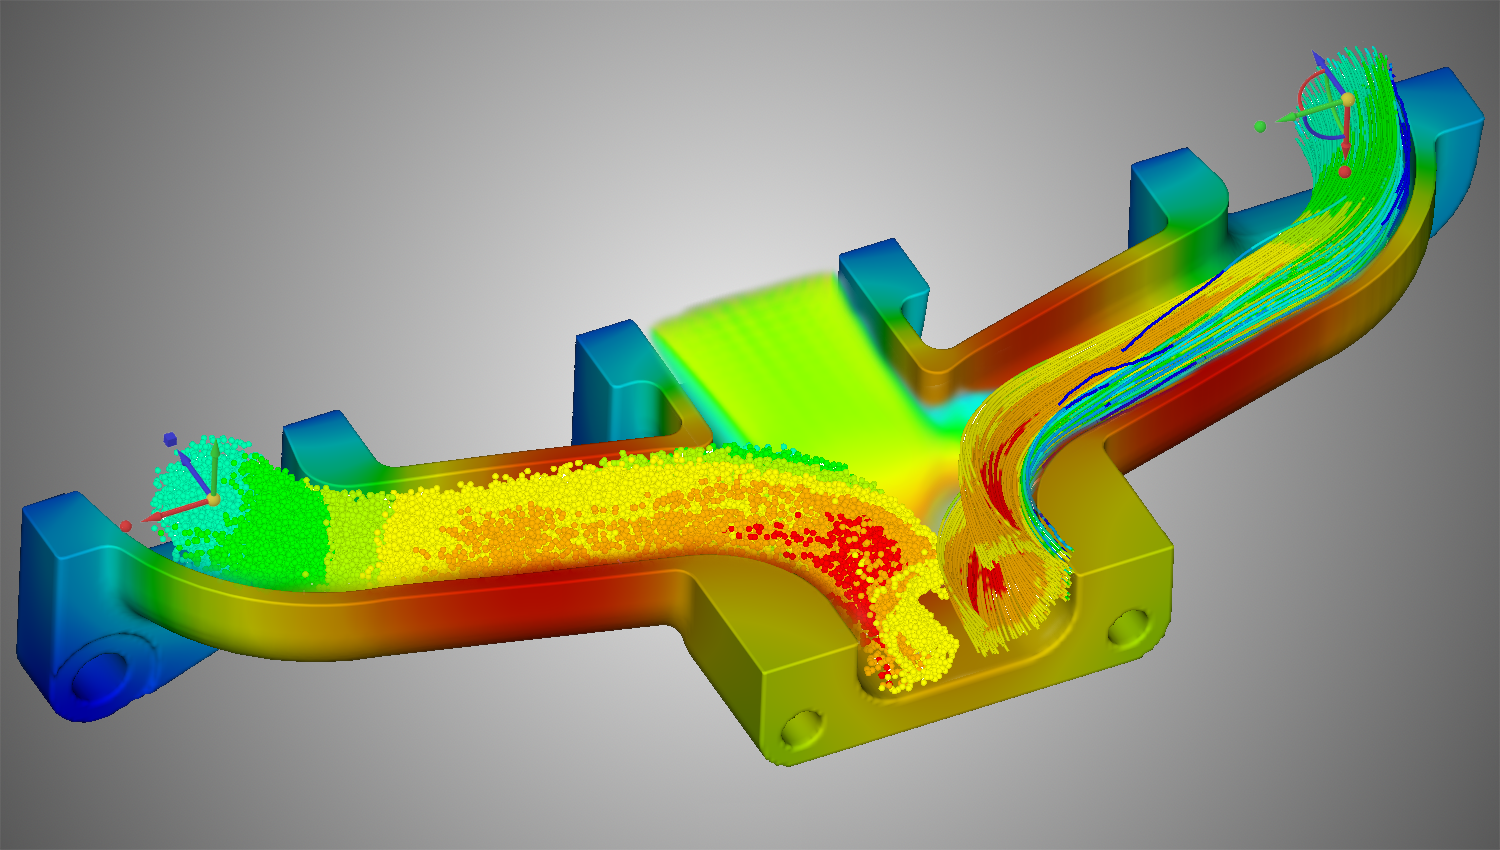 ANSYS Software ANSYS is the global leader in engineering simulation